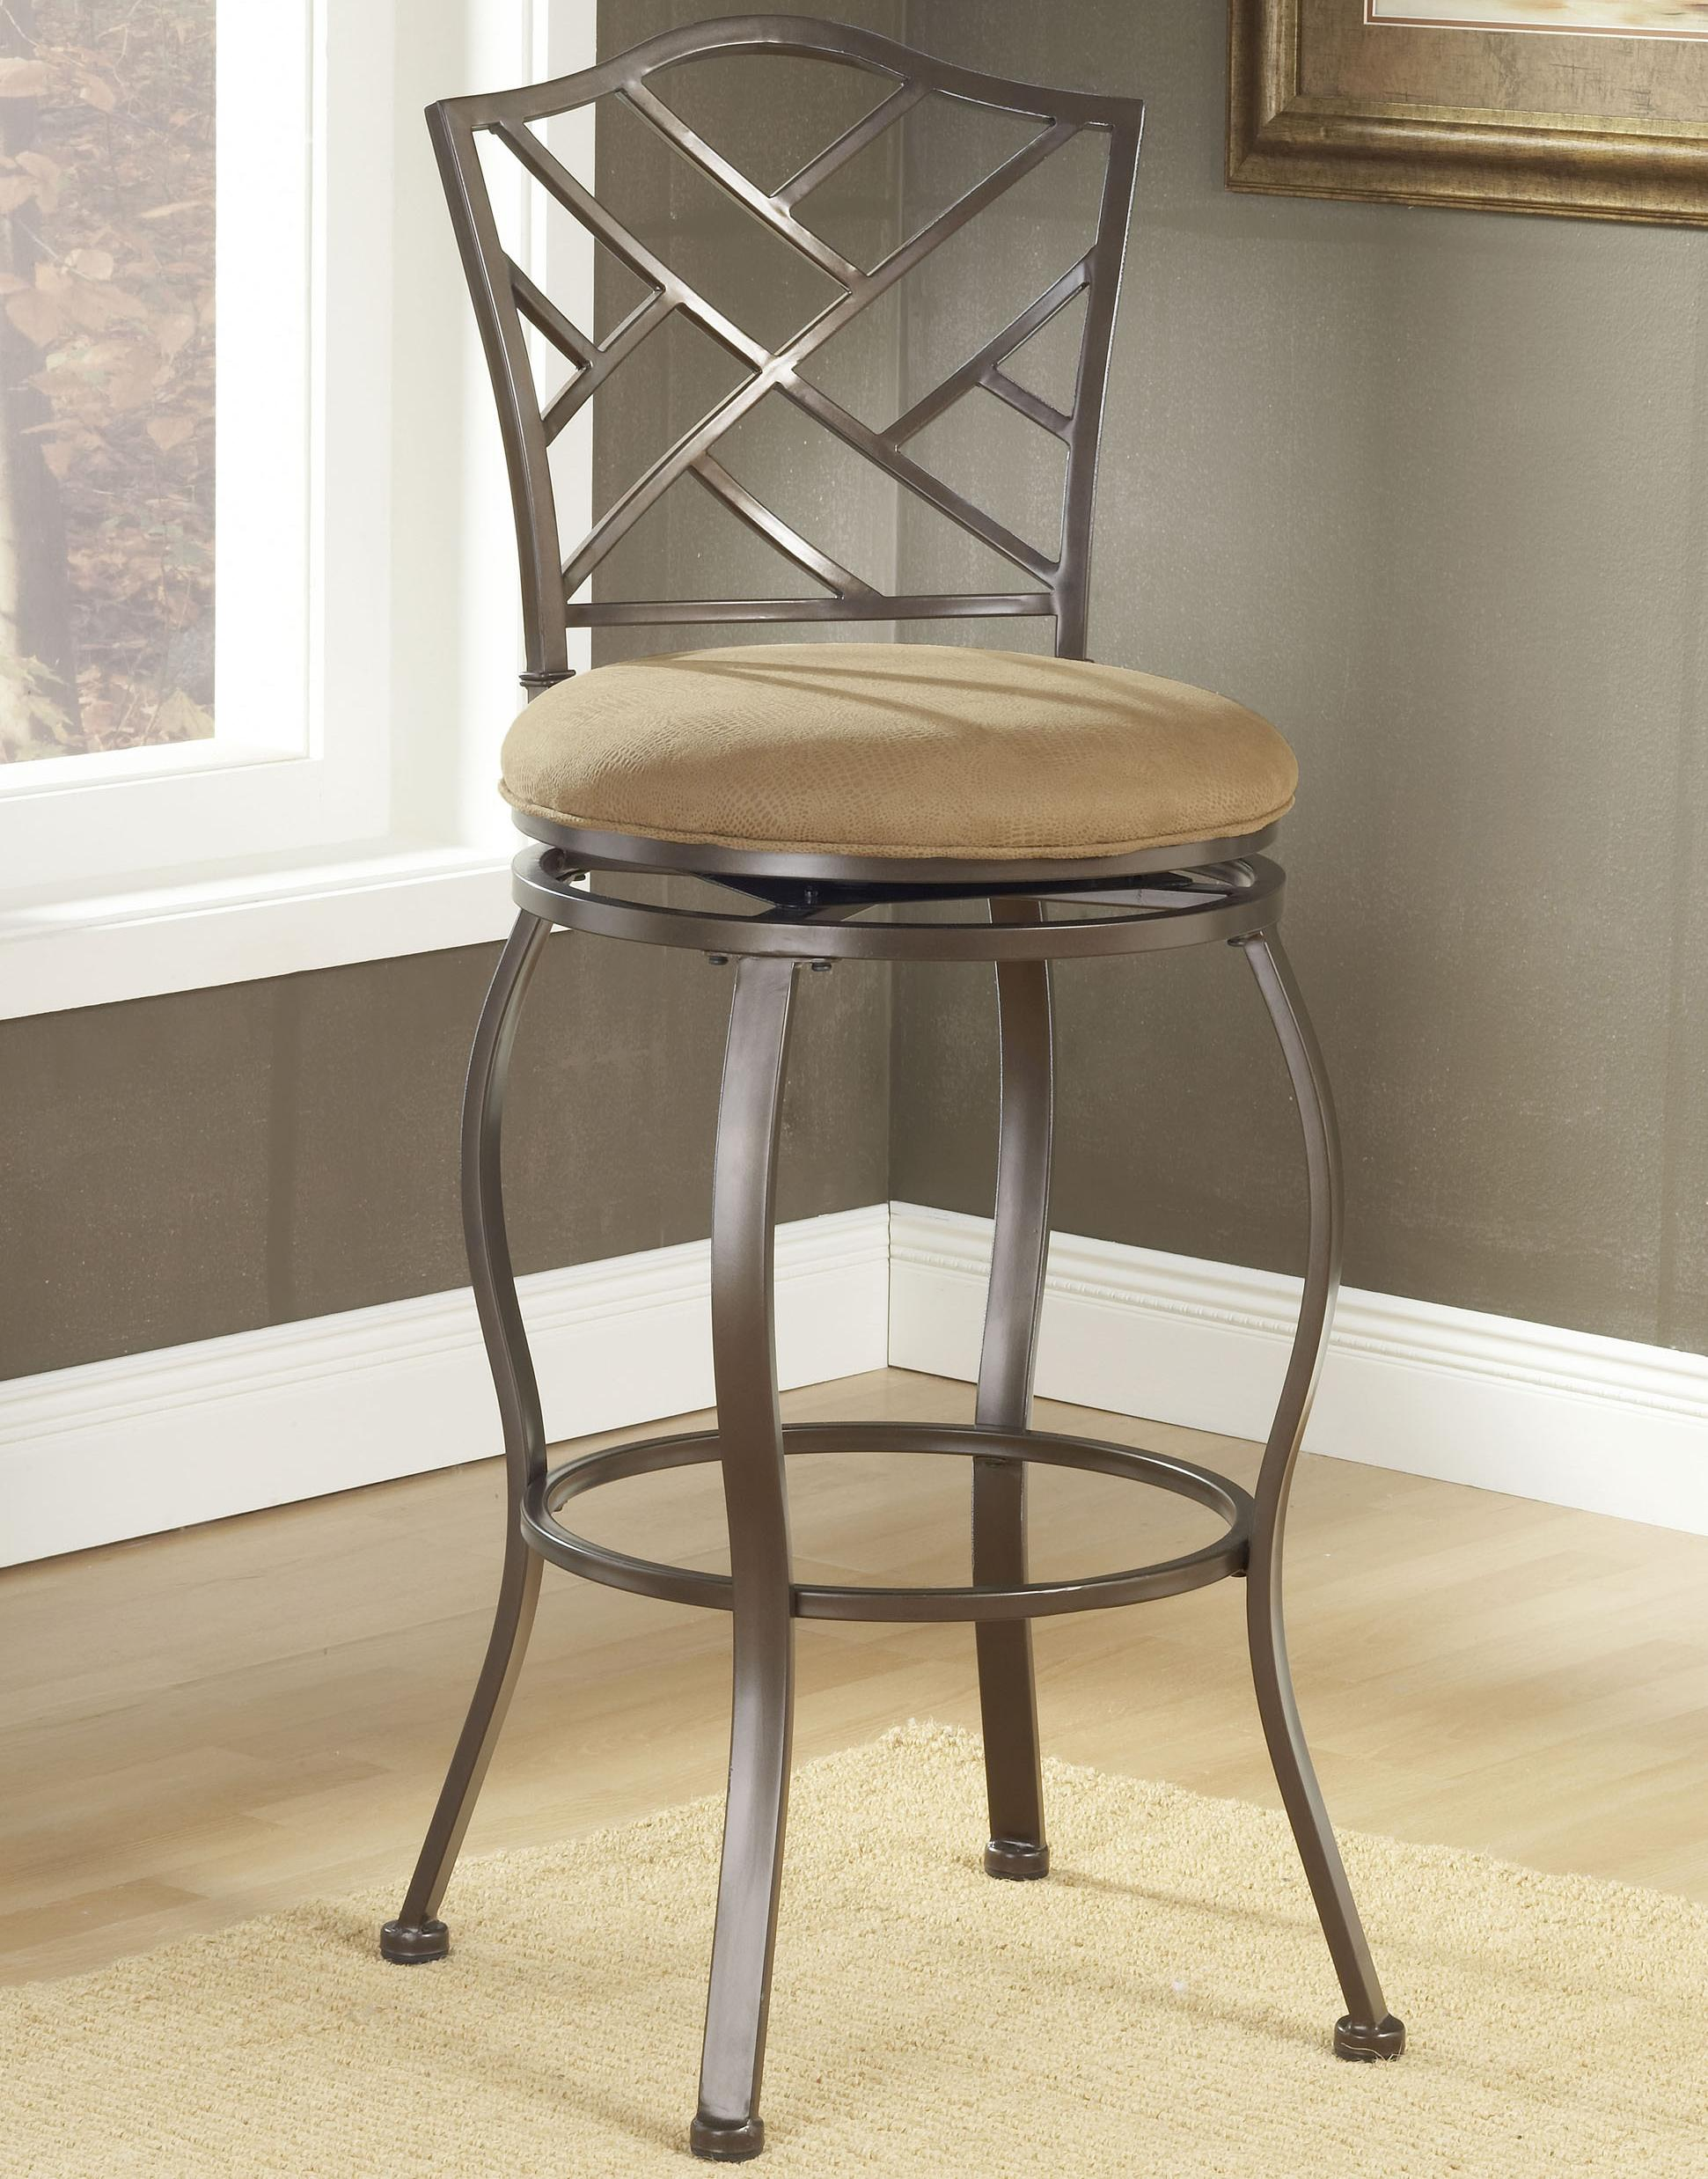 Hillsdale Stools 4815 843 Counter Height Hanover Swivel Stool With Metal Back Miller Home Bar Stools